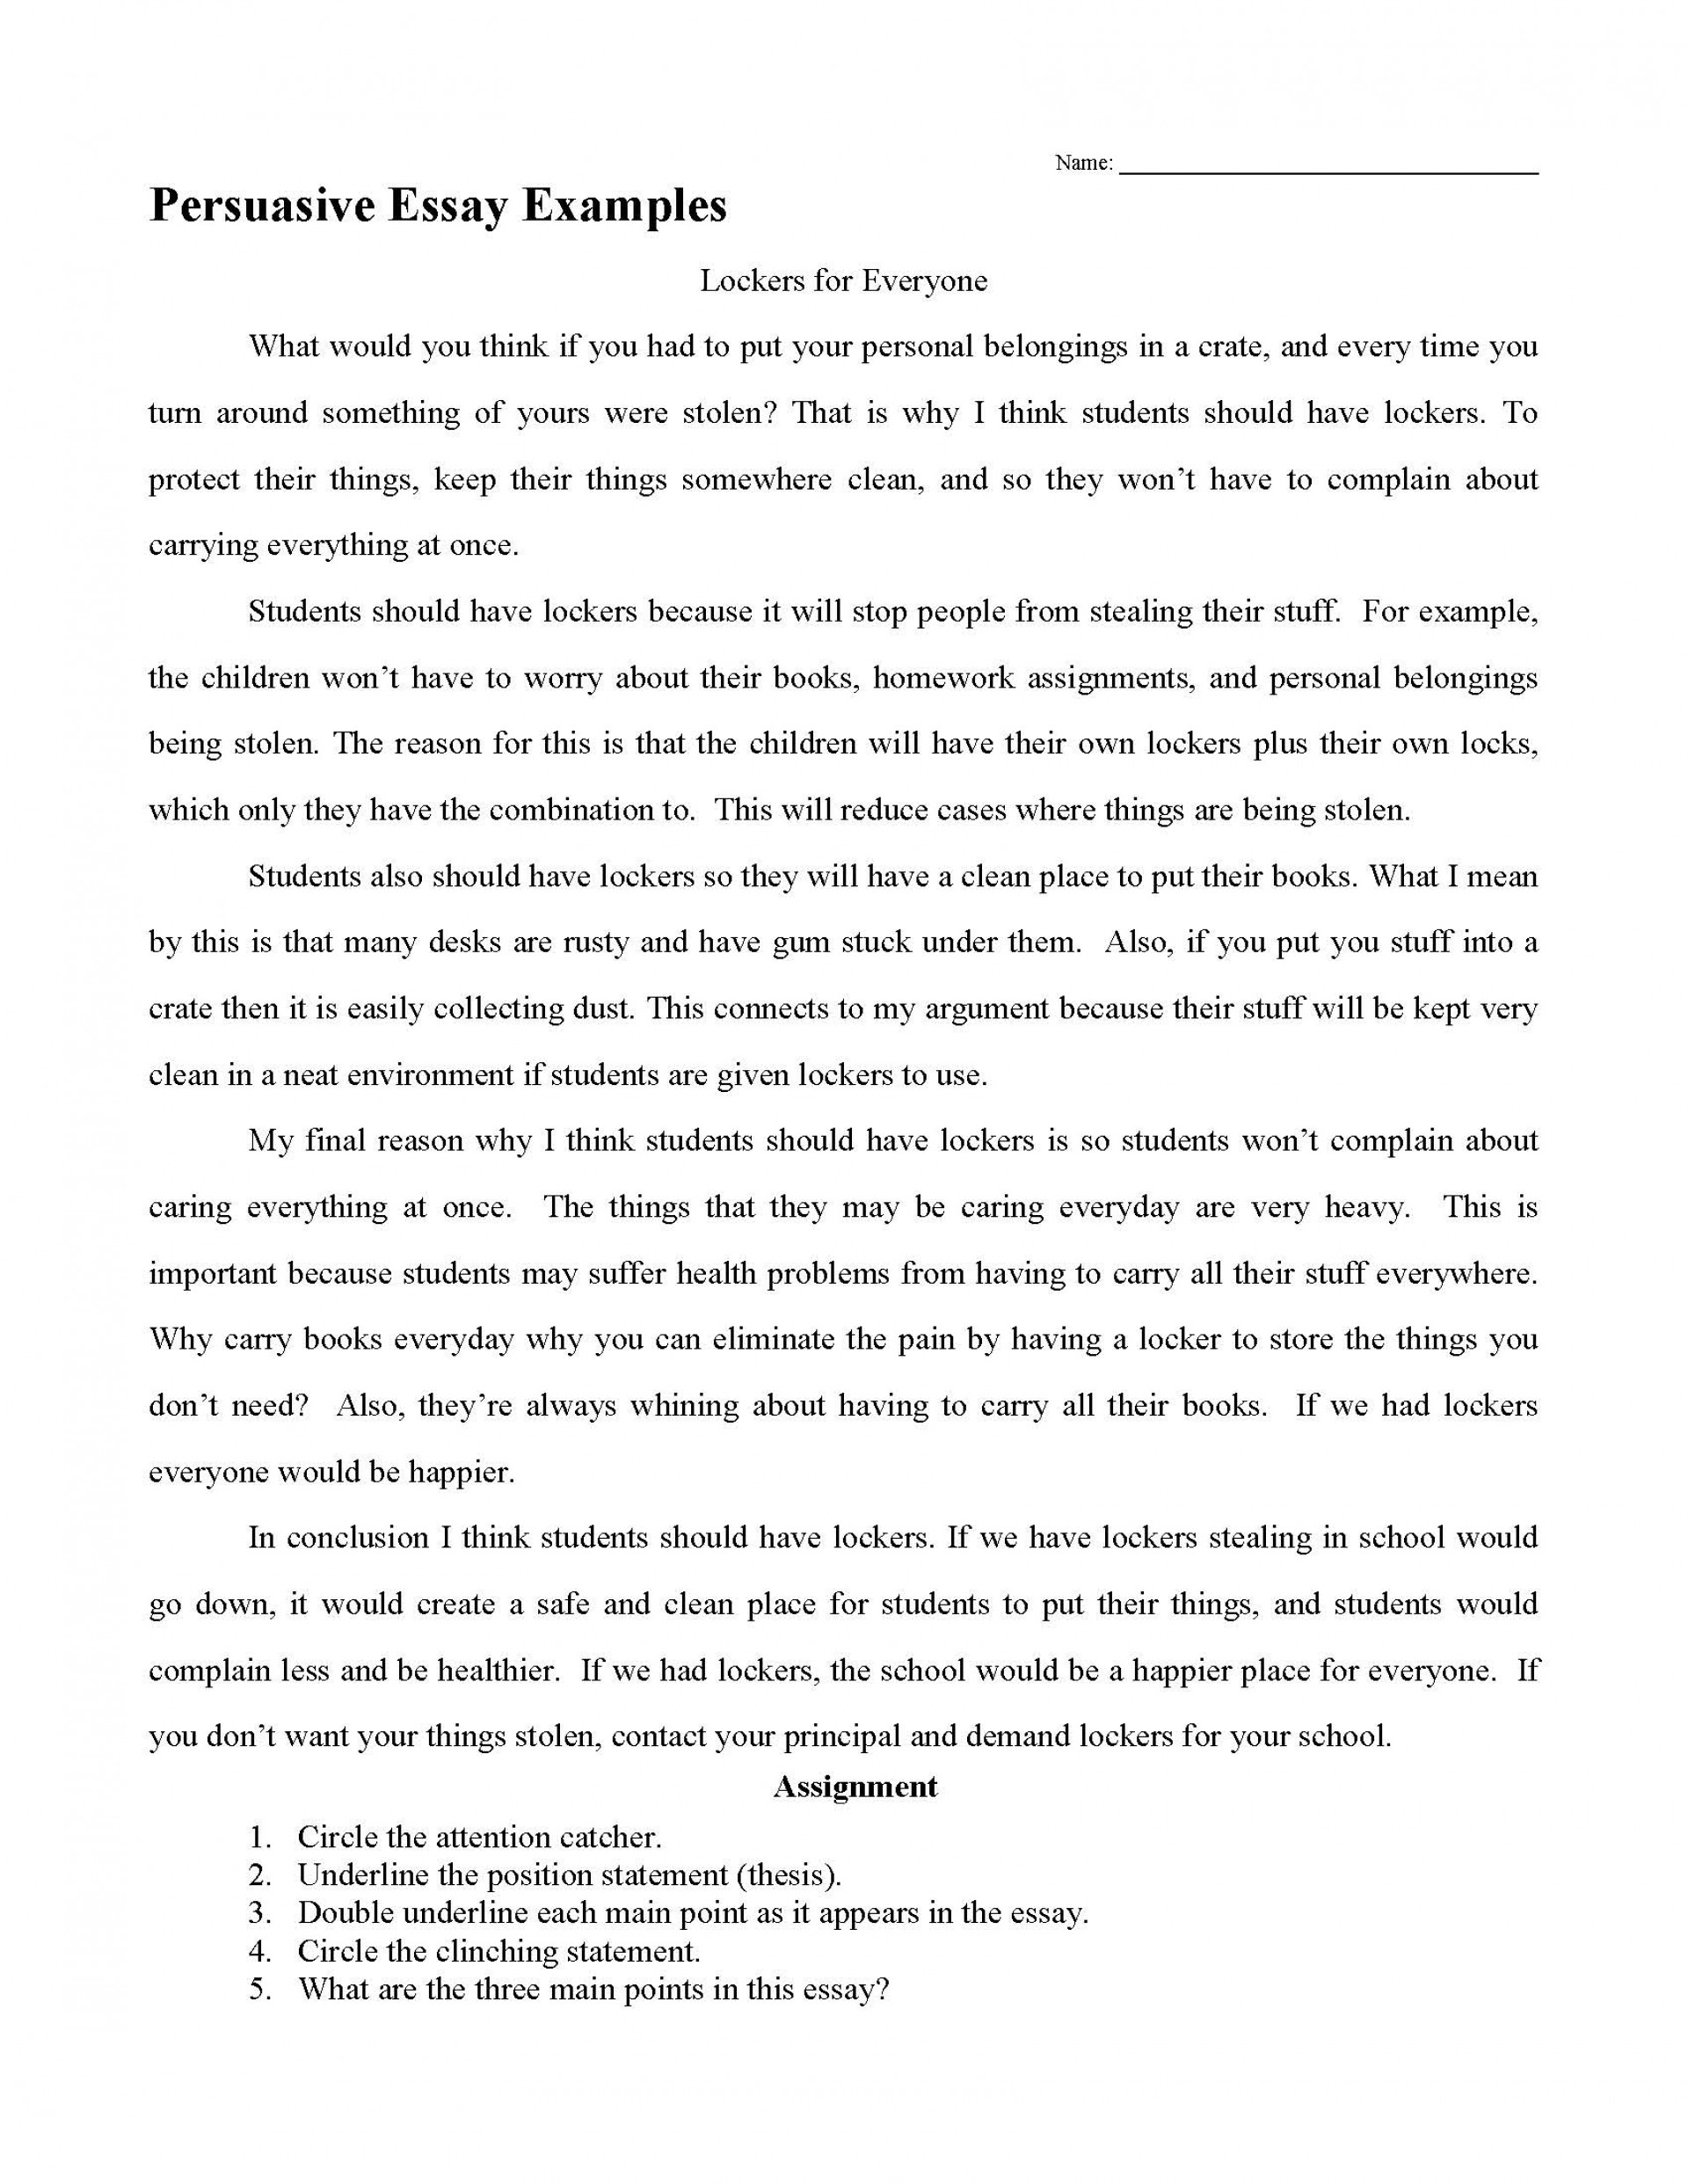 015 Research Paper Immigration Topics Persuasive Essay Examples Stunning Law Illegal 1920